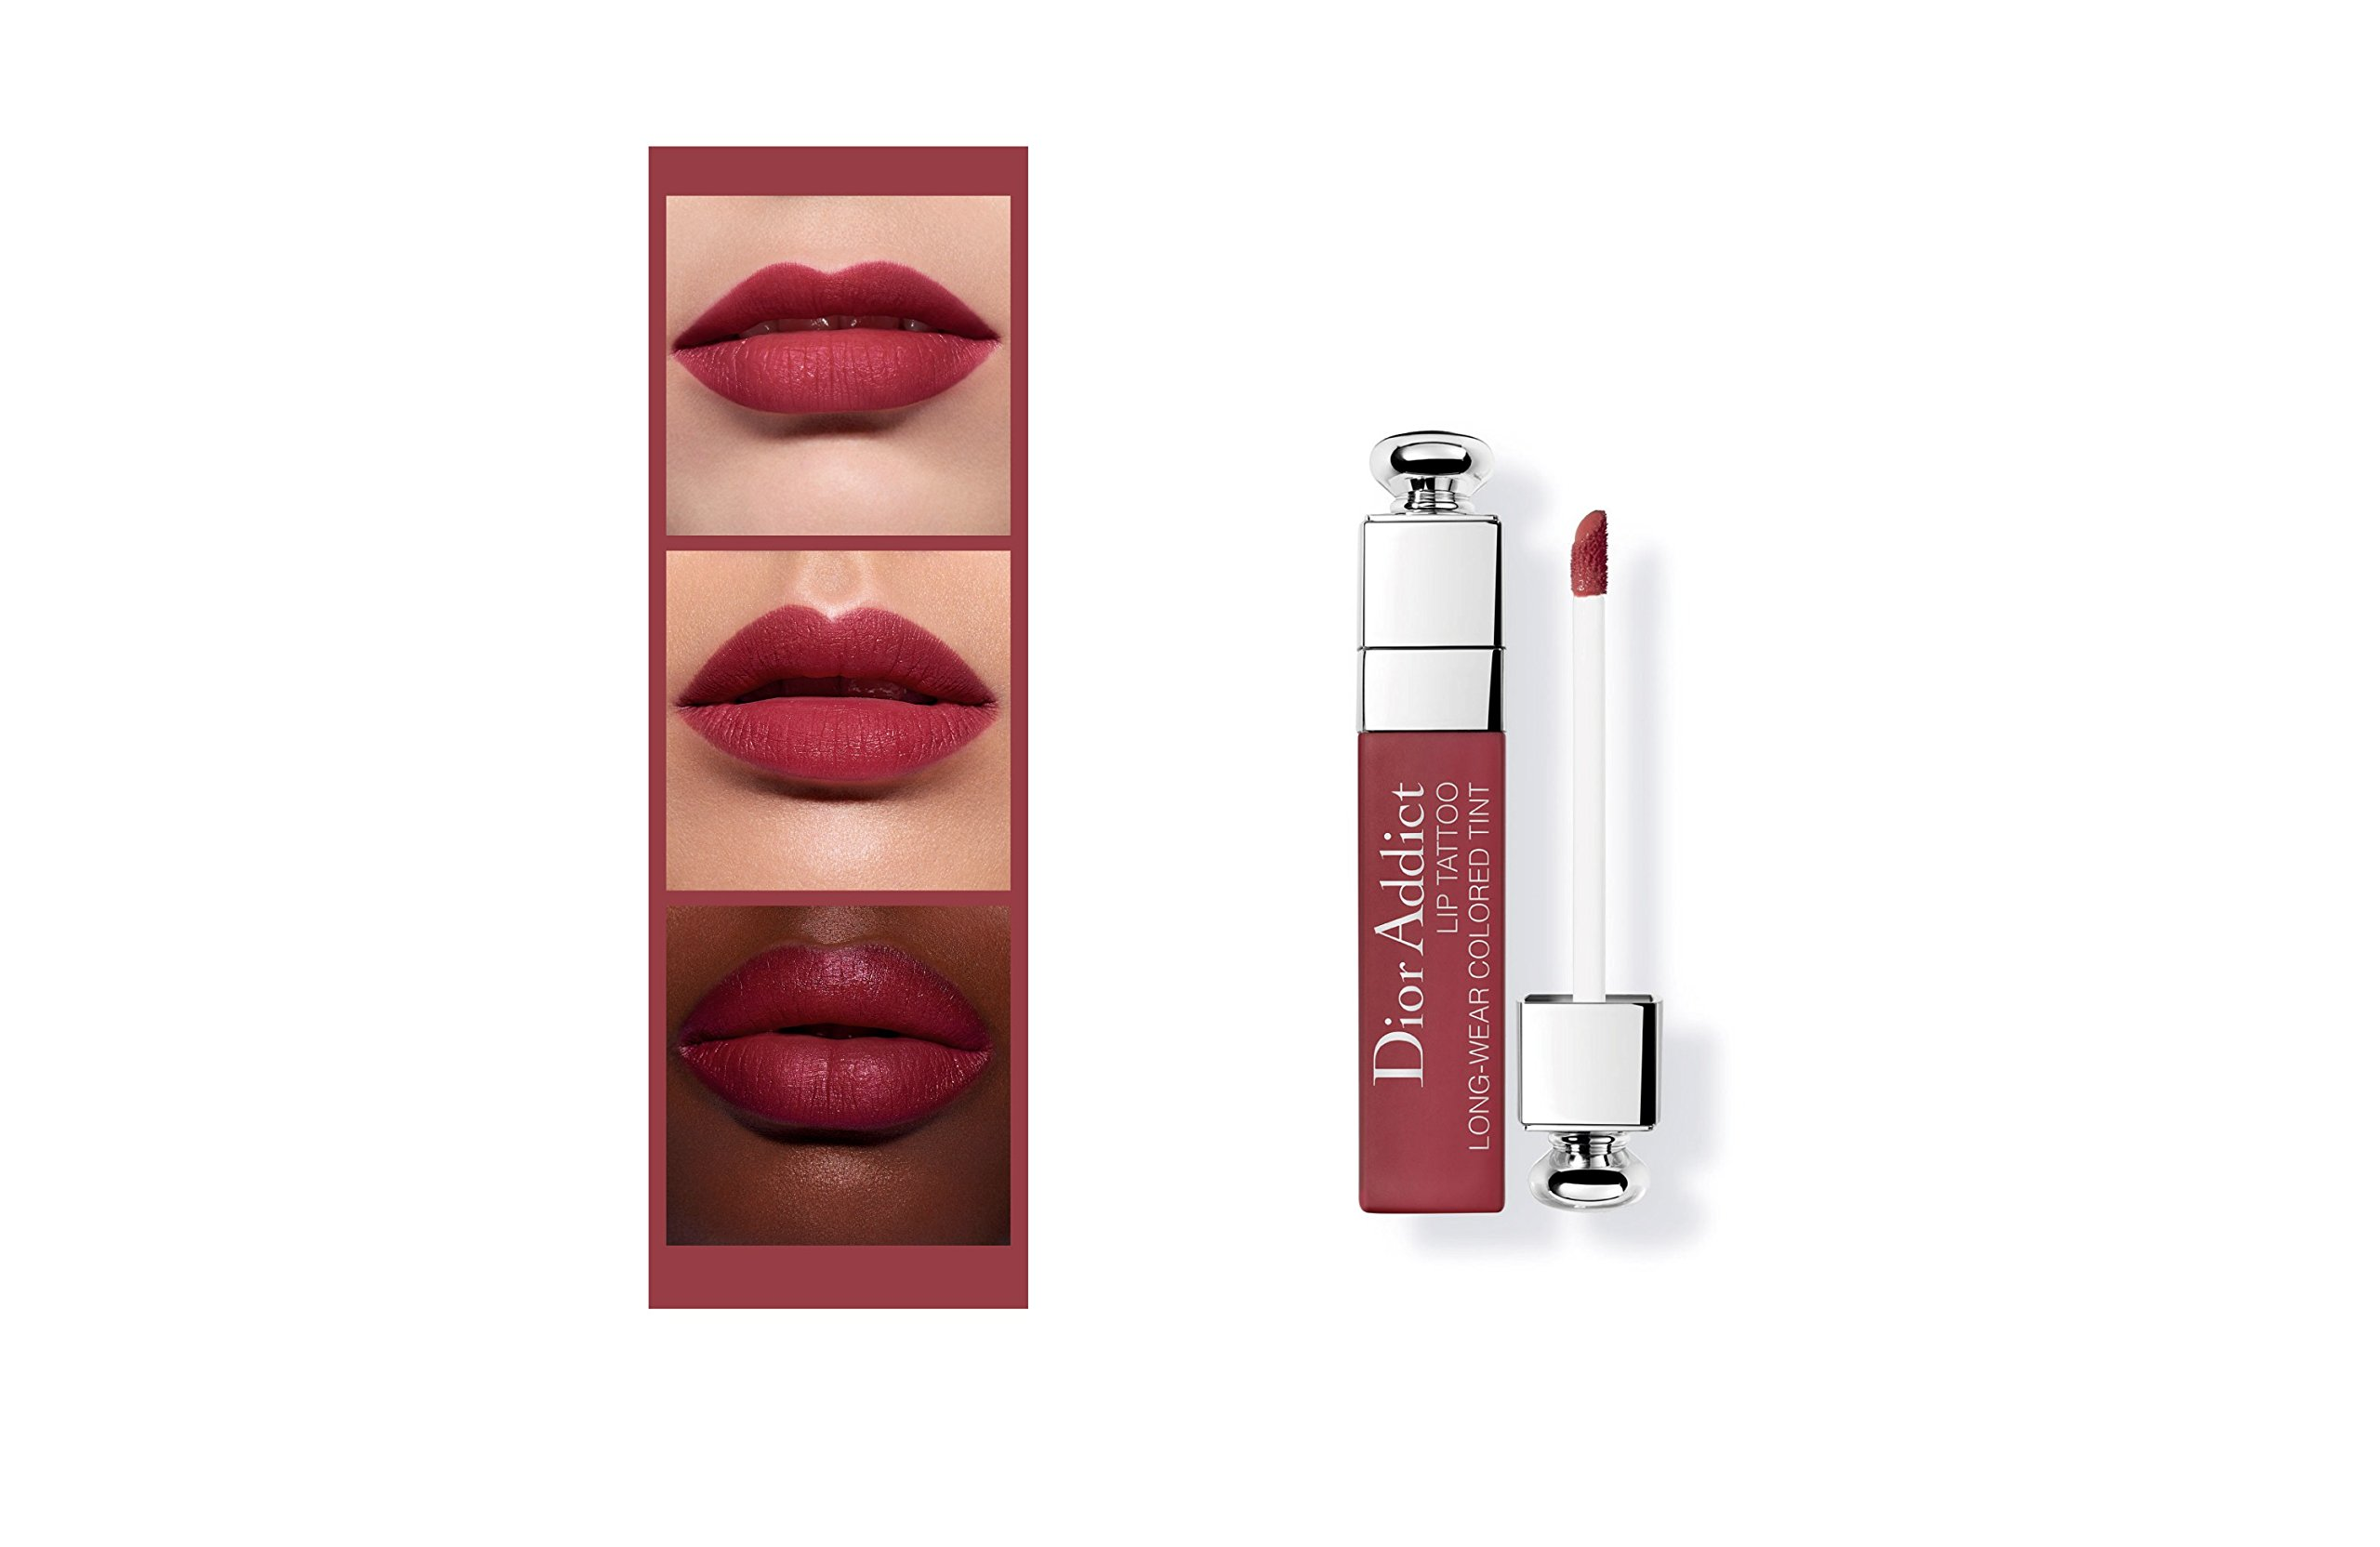 DIOR ADDICT LIP TATTOO # 771 NATURAL BERRY TINT by Dior